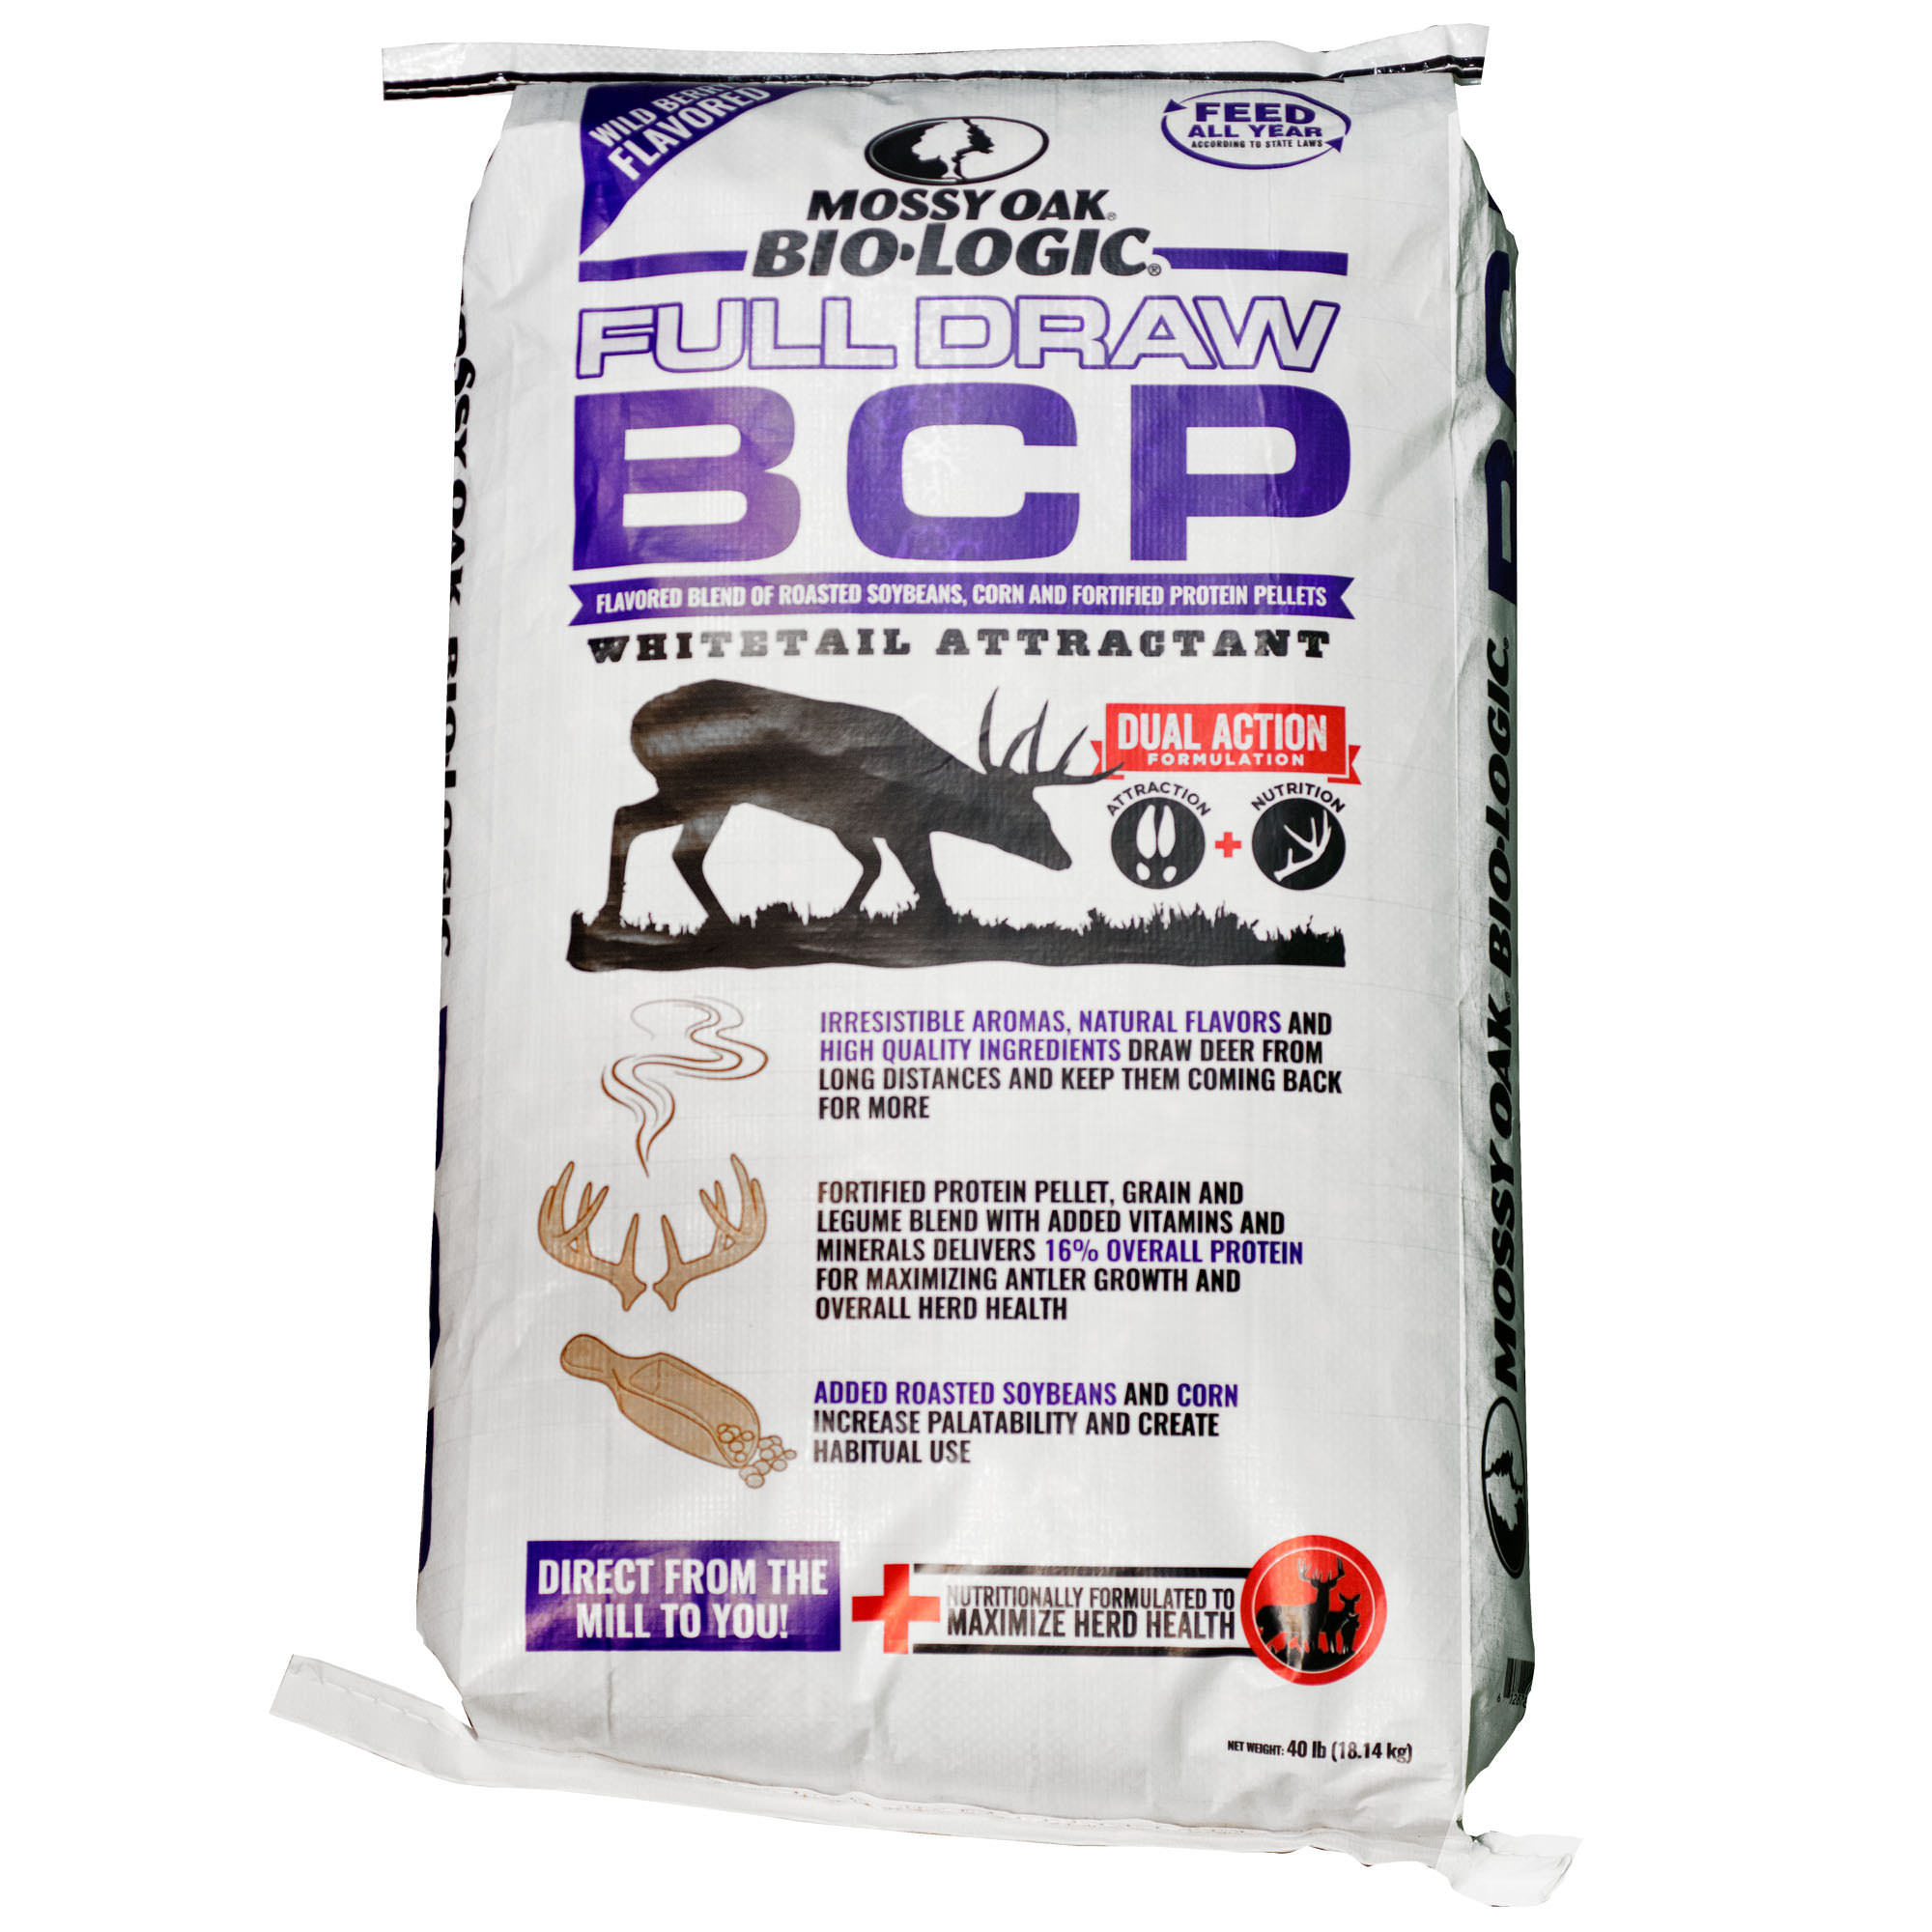 Mossy Oak BioLogic Full Draw BCP Wild Berry Deer Attractant